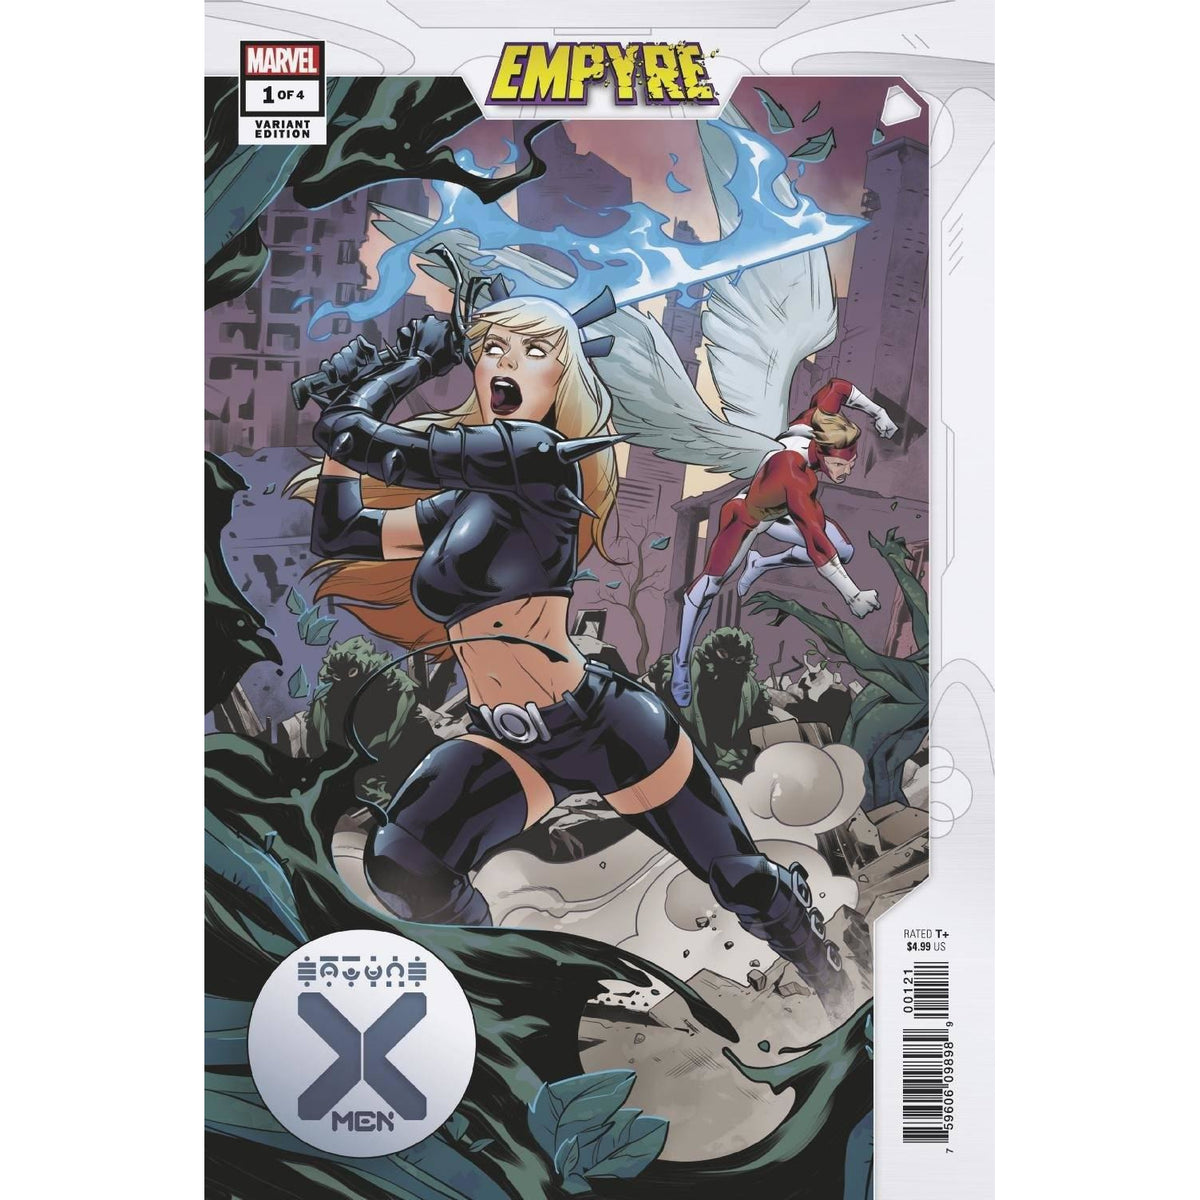 EMPYRE X-MEN #1 (OF 4) - RIBIC VARIANT COVER B